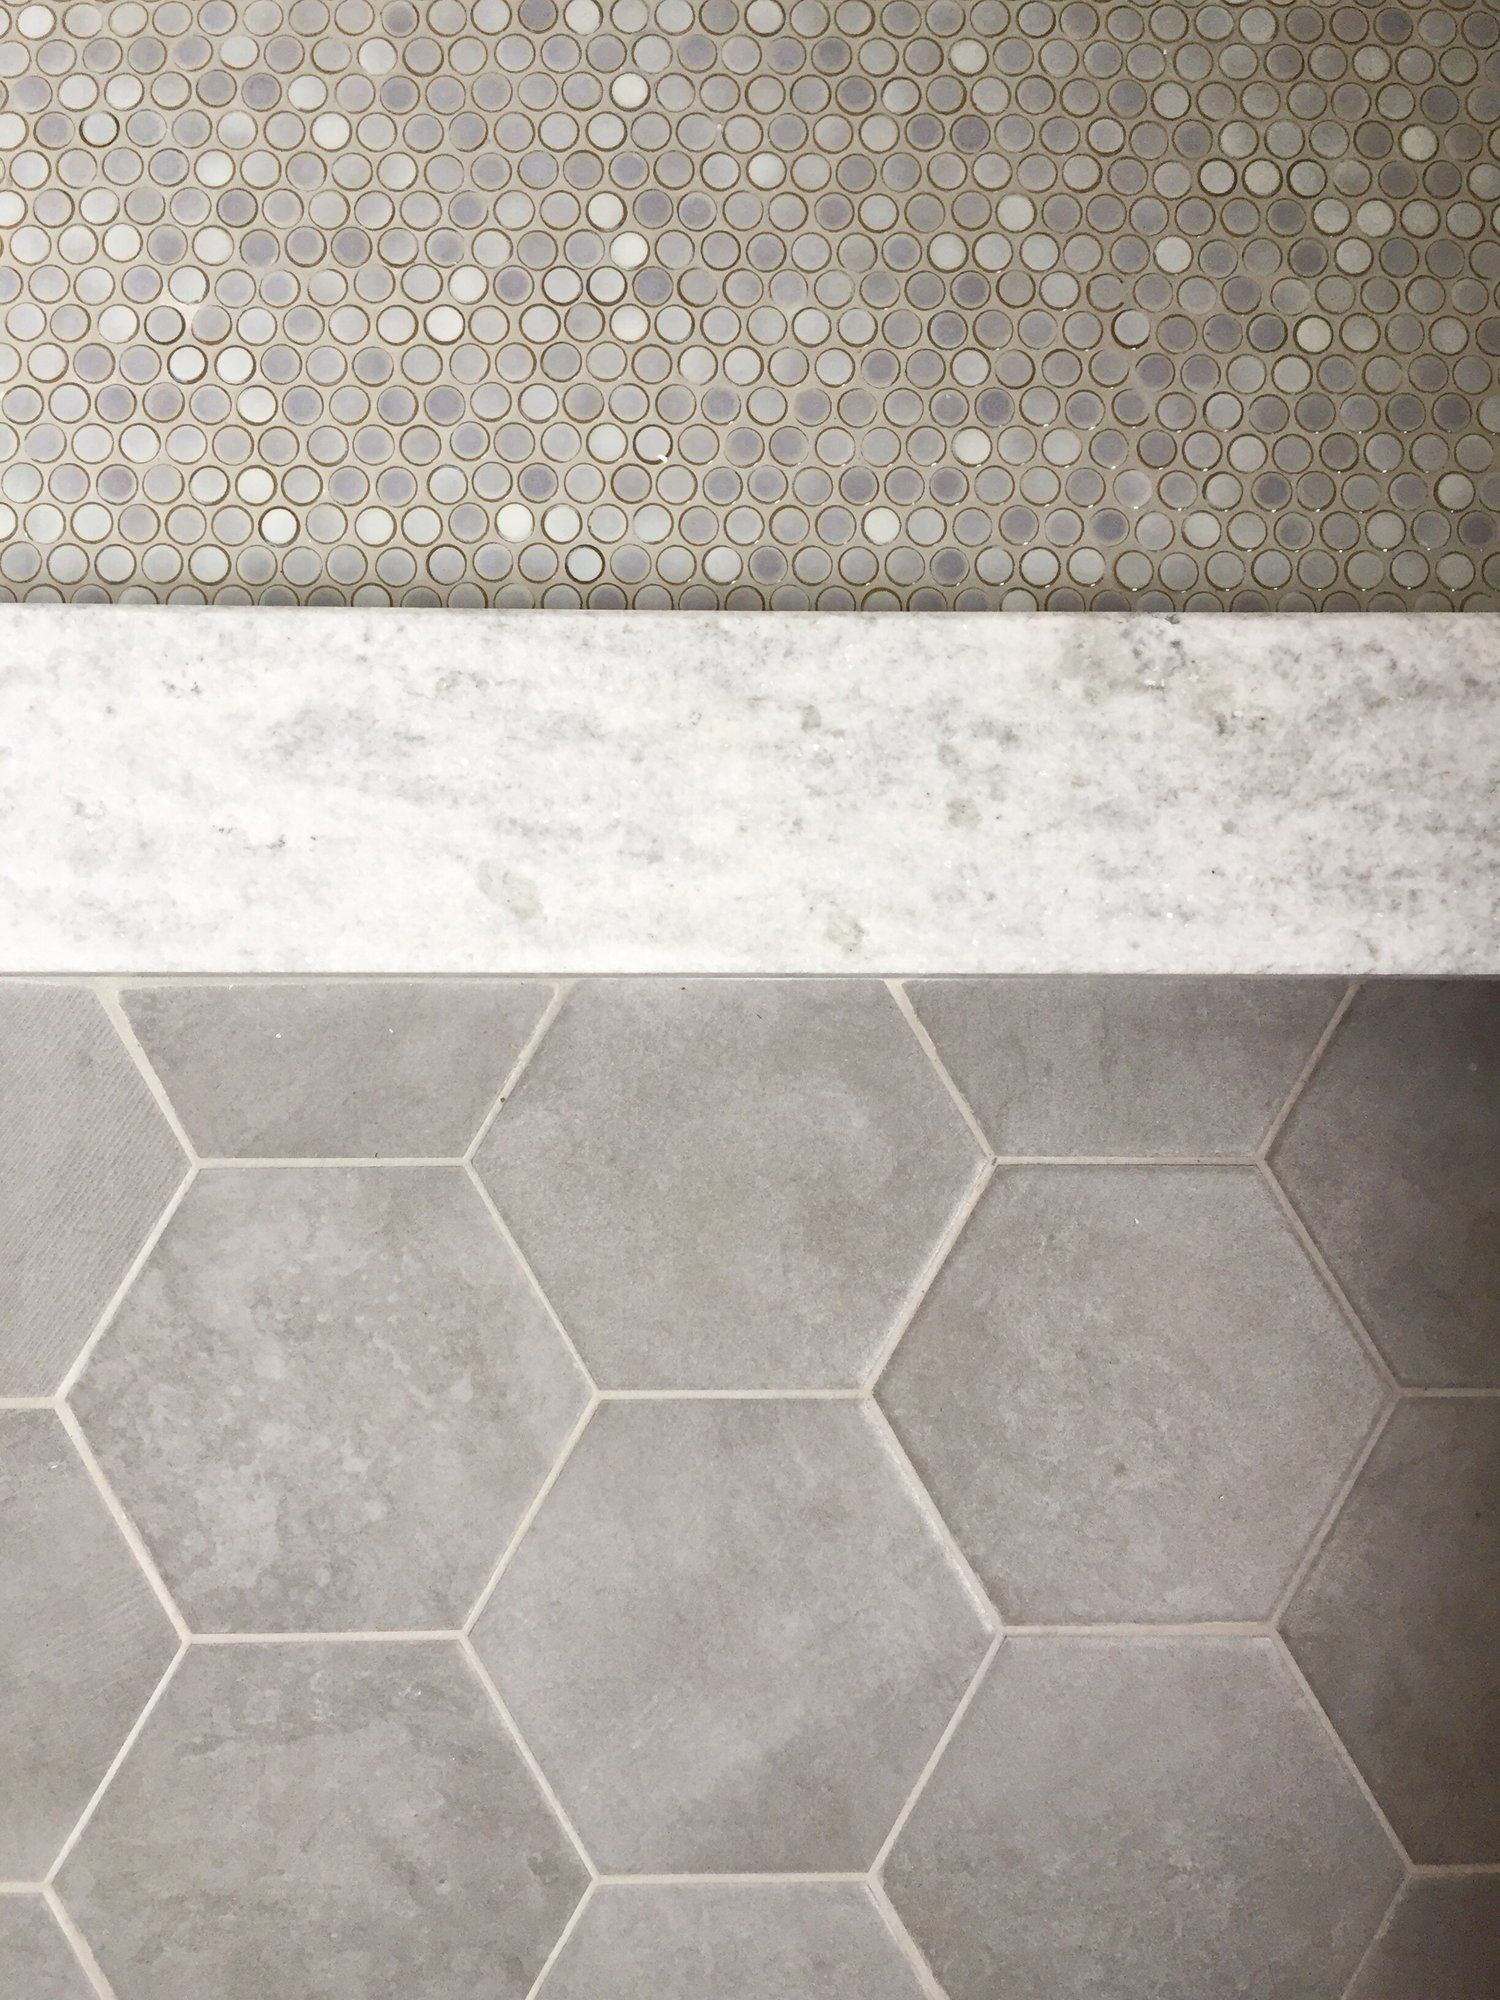 Tile Flooring Penny Tile Hex Tile White Granite Master Bathroom